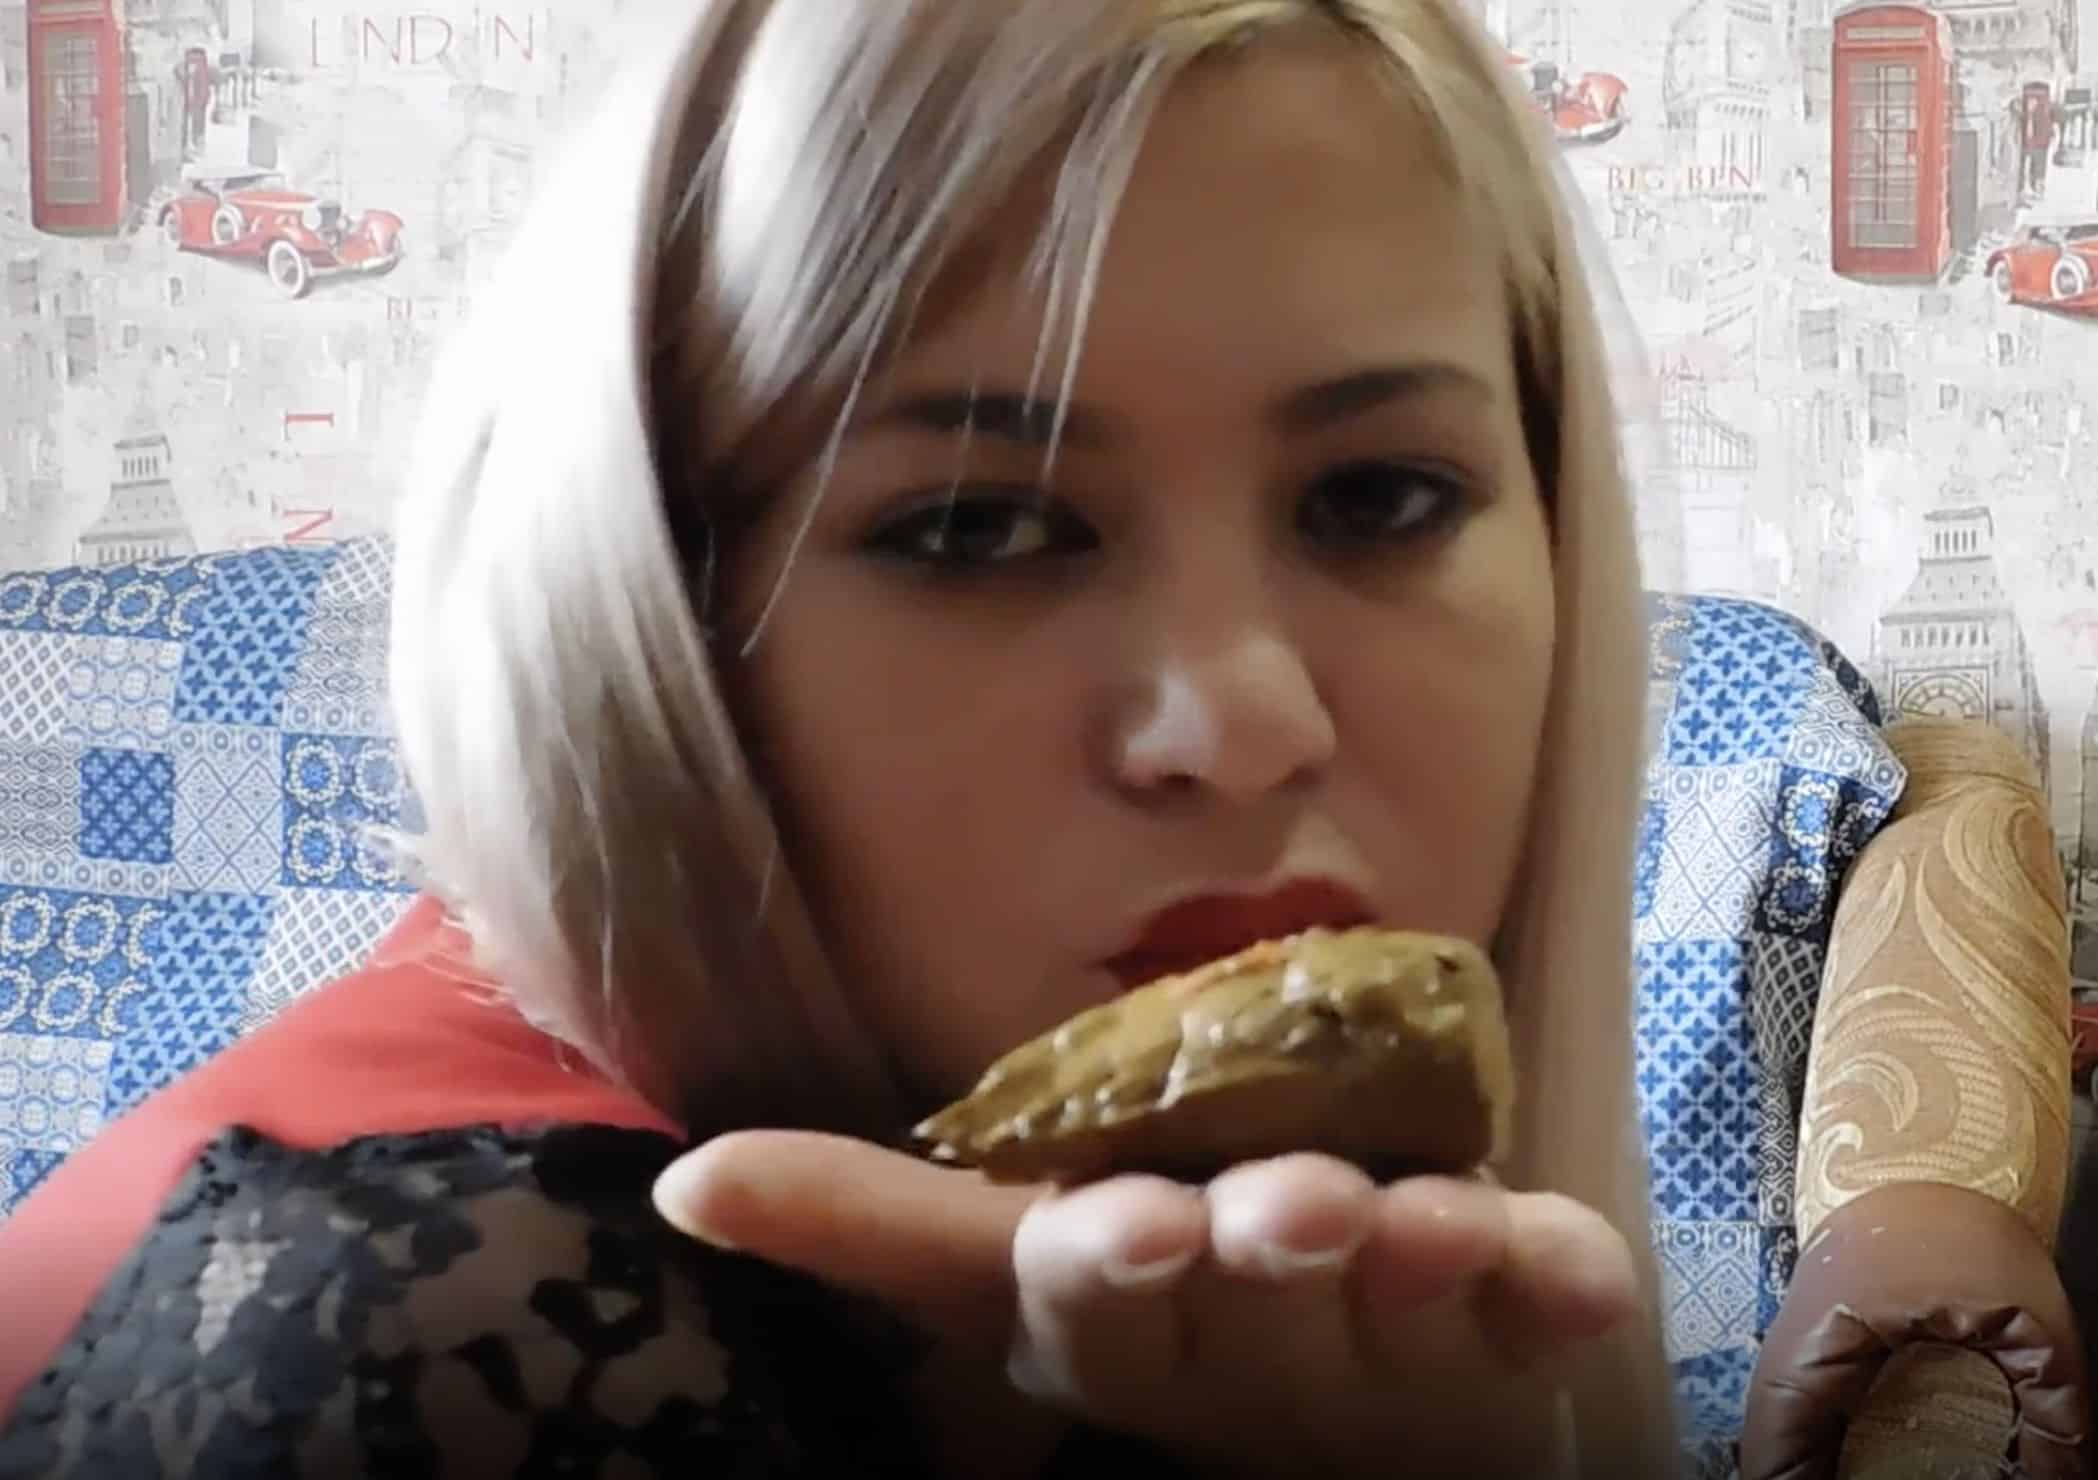 Porn Eating On Floor watch blonde having a poo porn and sex videos | freescatporntube